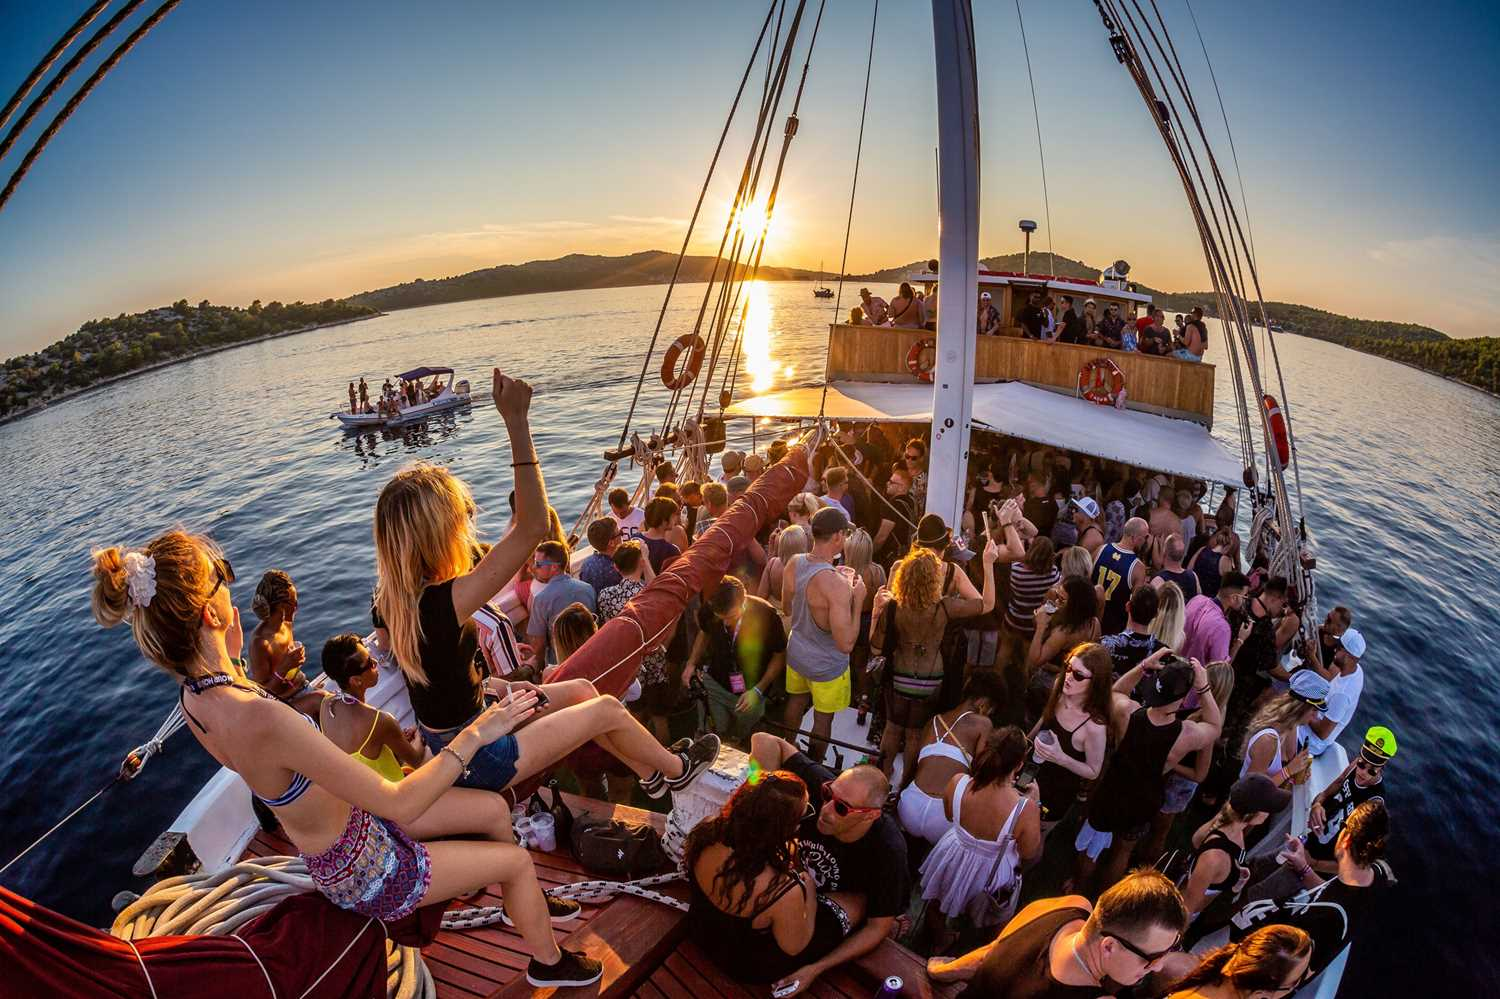 The Ultimate Music Festival Experience for 2 at Defected Croatia 2021, Plus Flights, Accommodation - Image 5 of 5